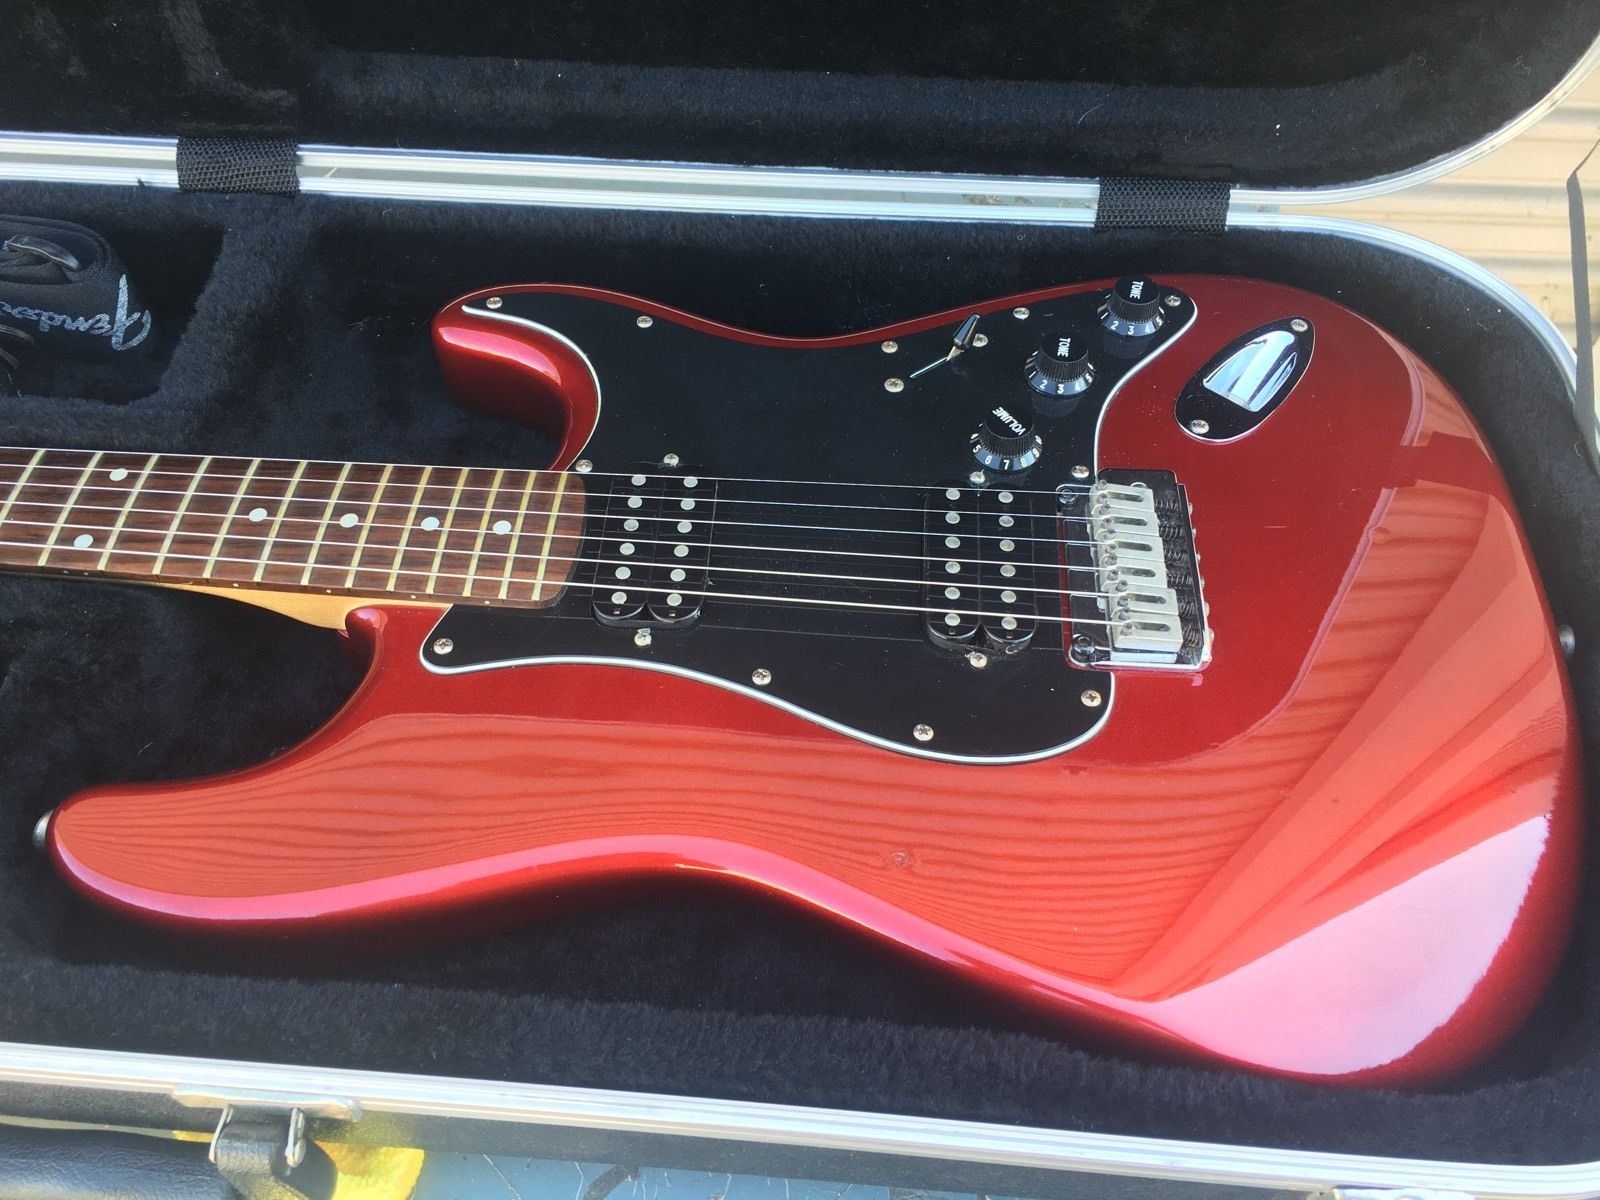 Fender Stratocaster Squier Standard Cherry Red 20th Anniversary Guitar W Case!